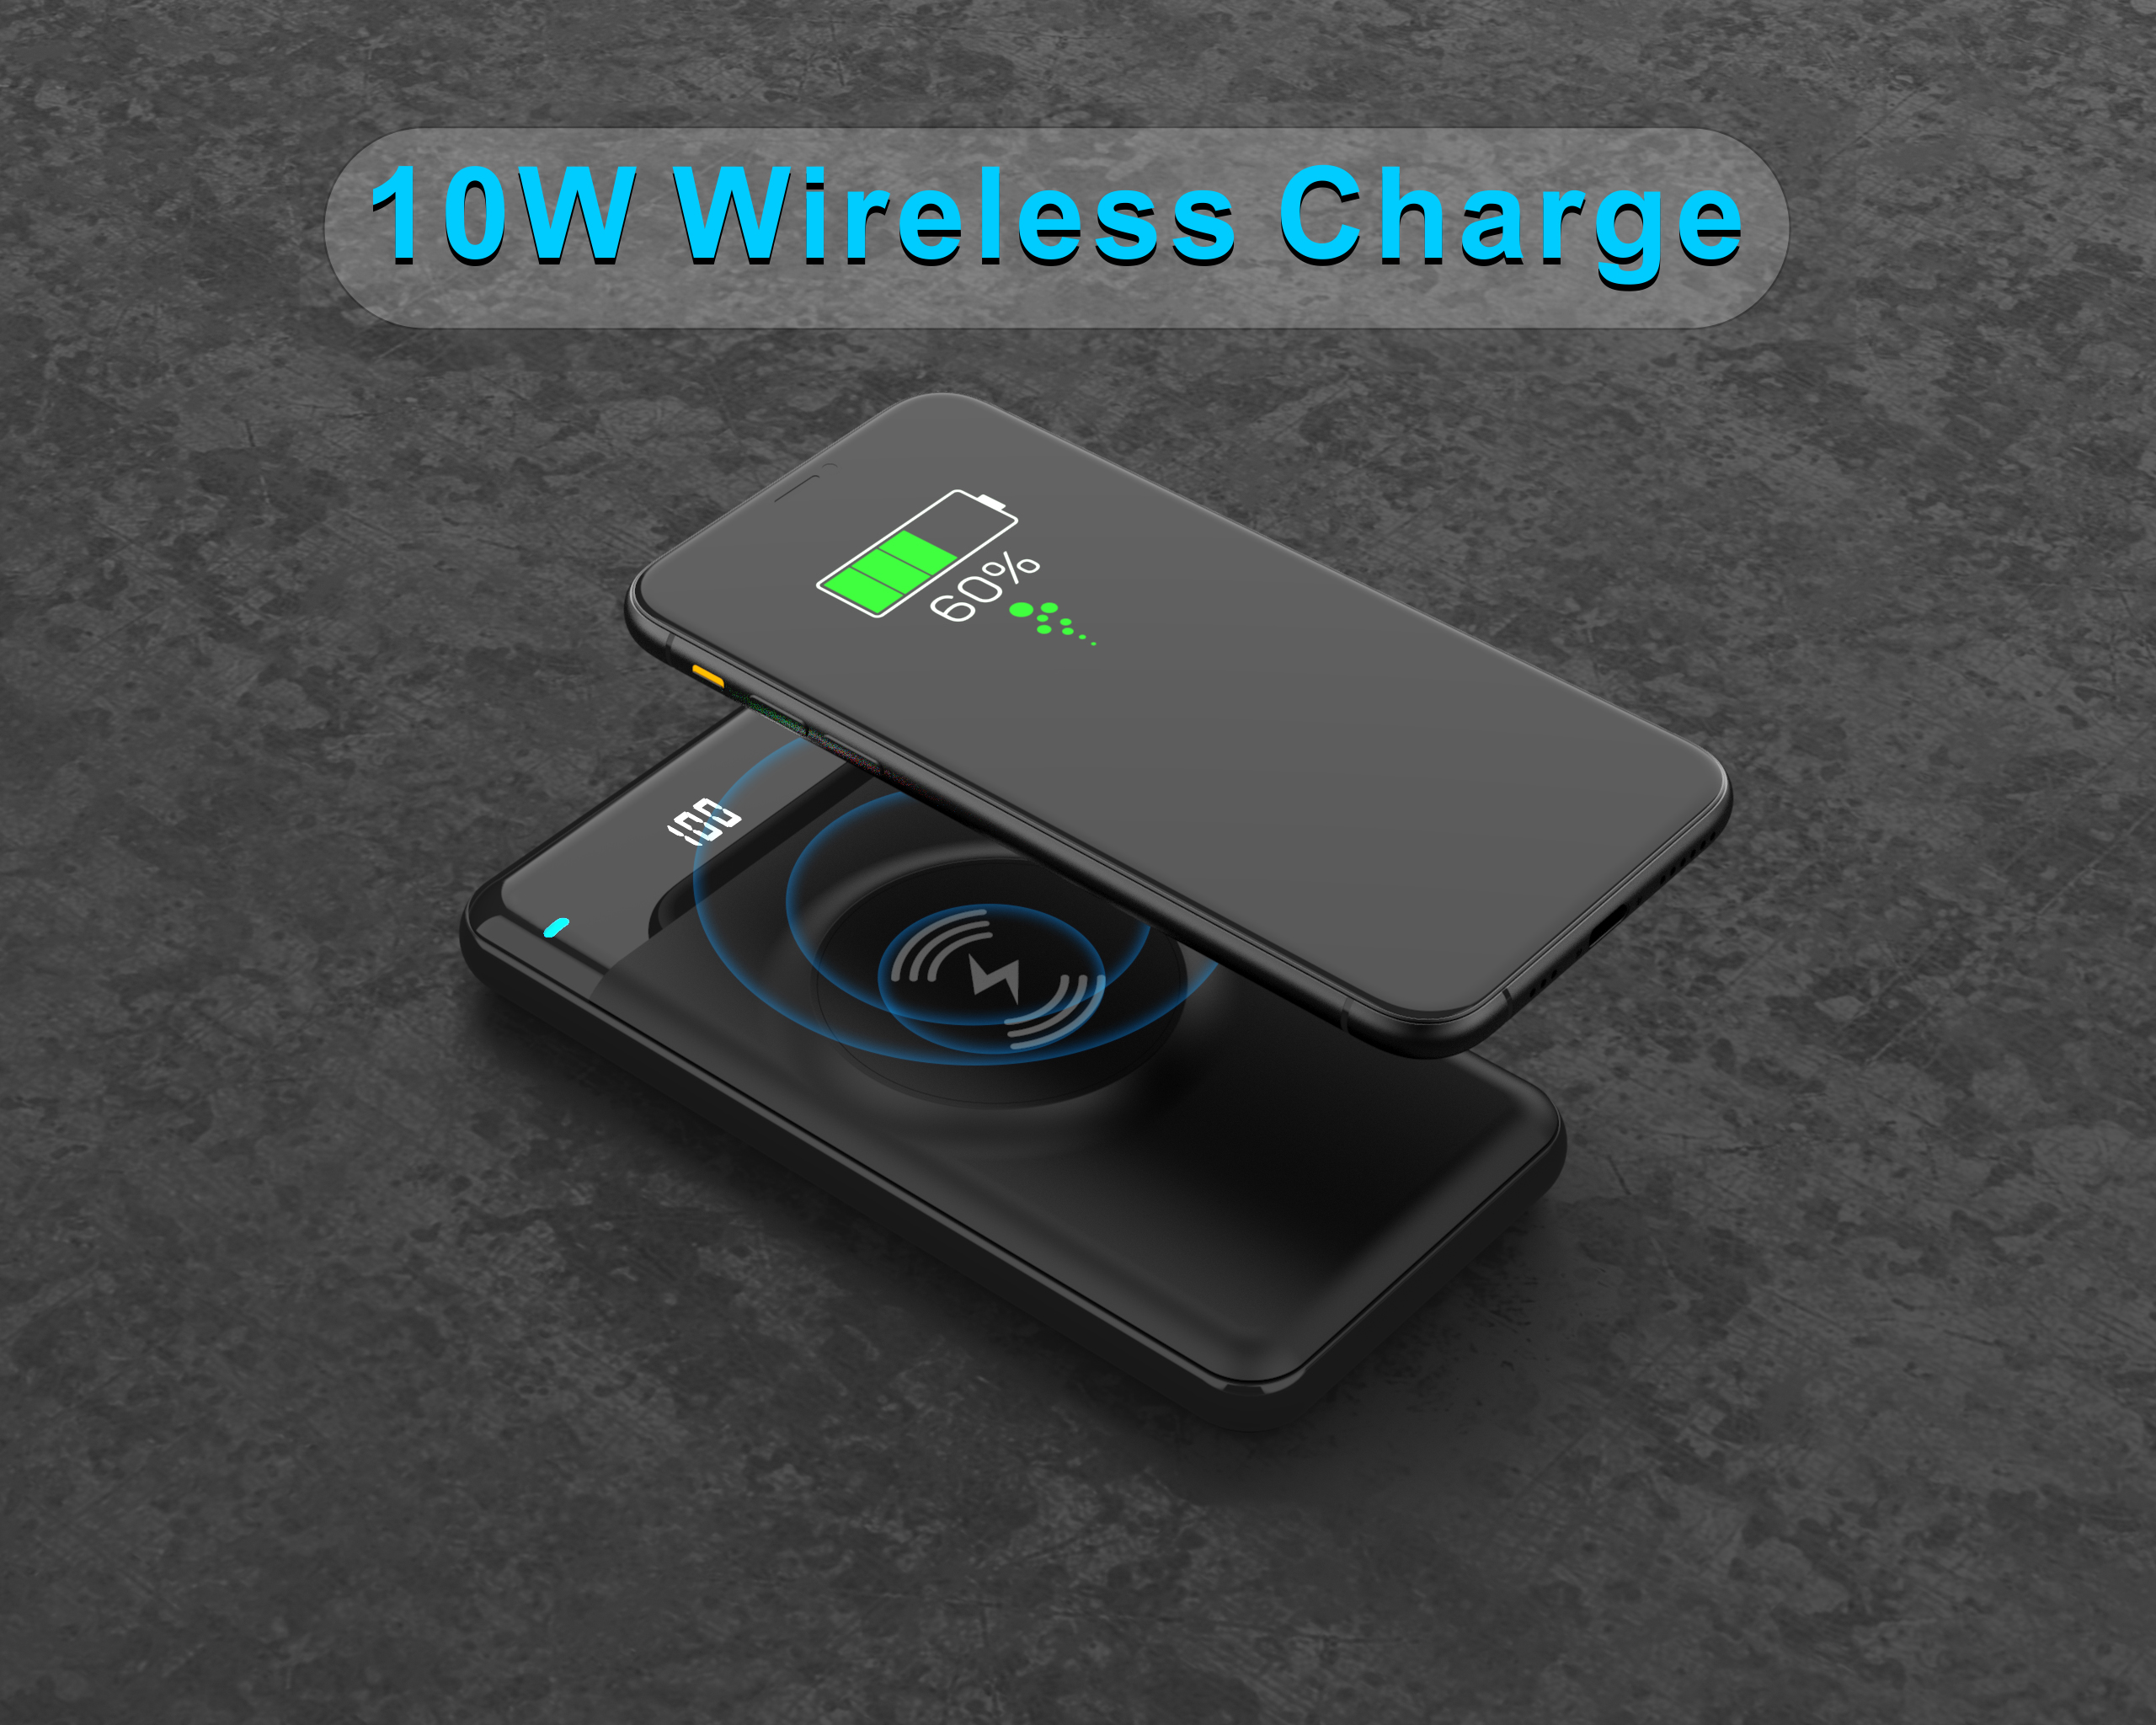 small OEM mobile customized logo Qi wireless charge powerbank 10000 mAh